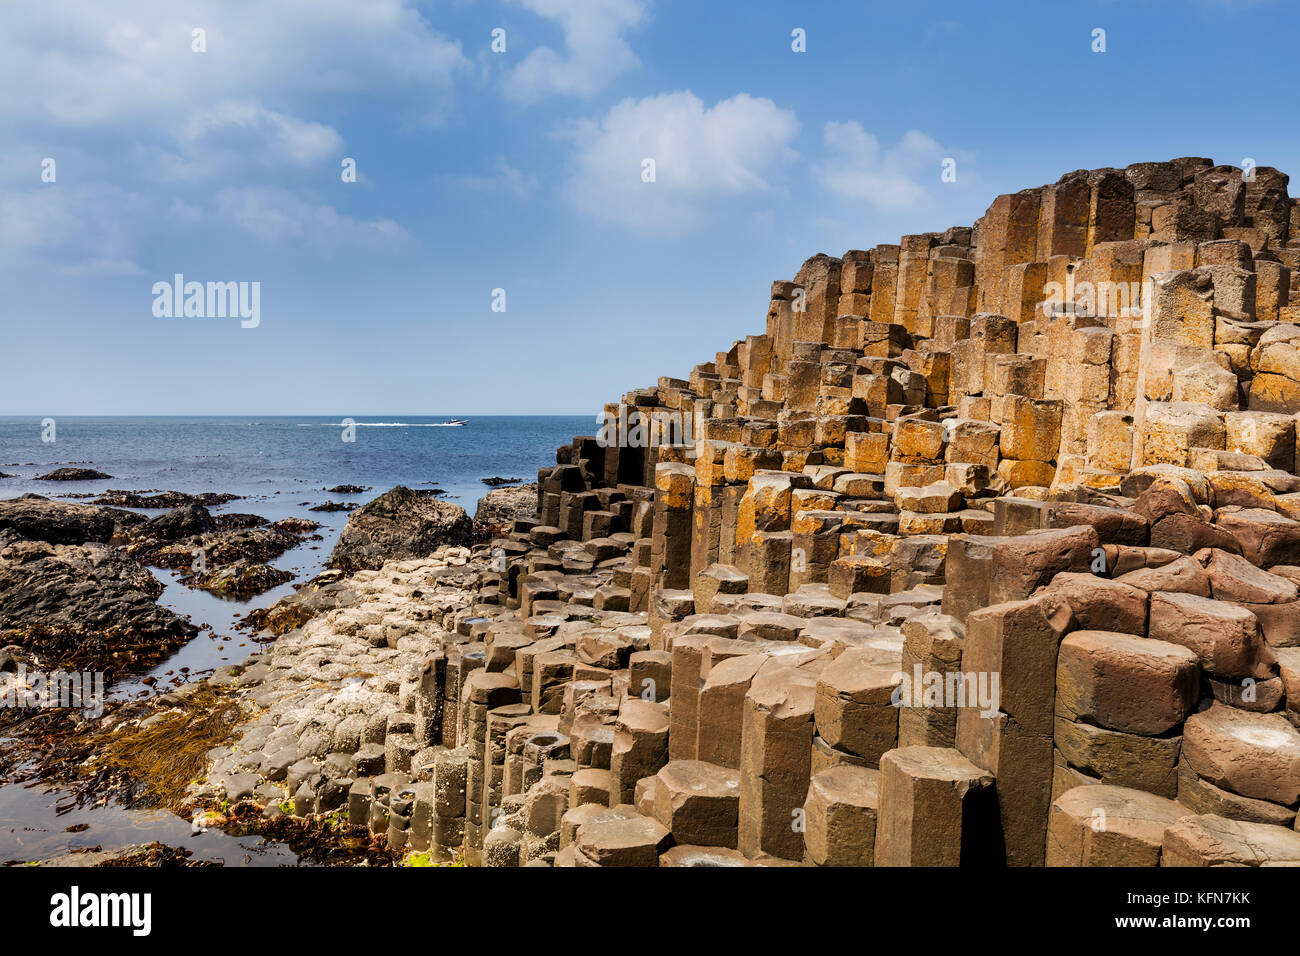 The Giants Causeway in County Antrim of Northern Ireland is declared a World Heritage Site by UNESCO containing - Stock Image